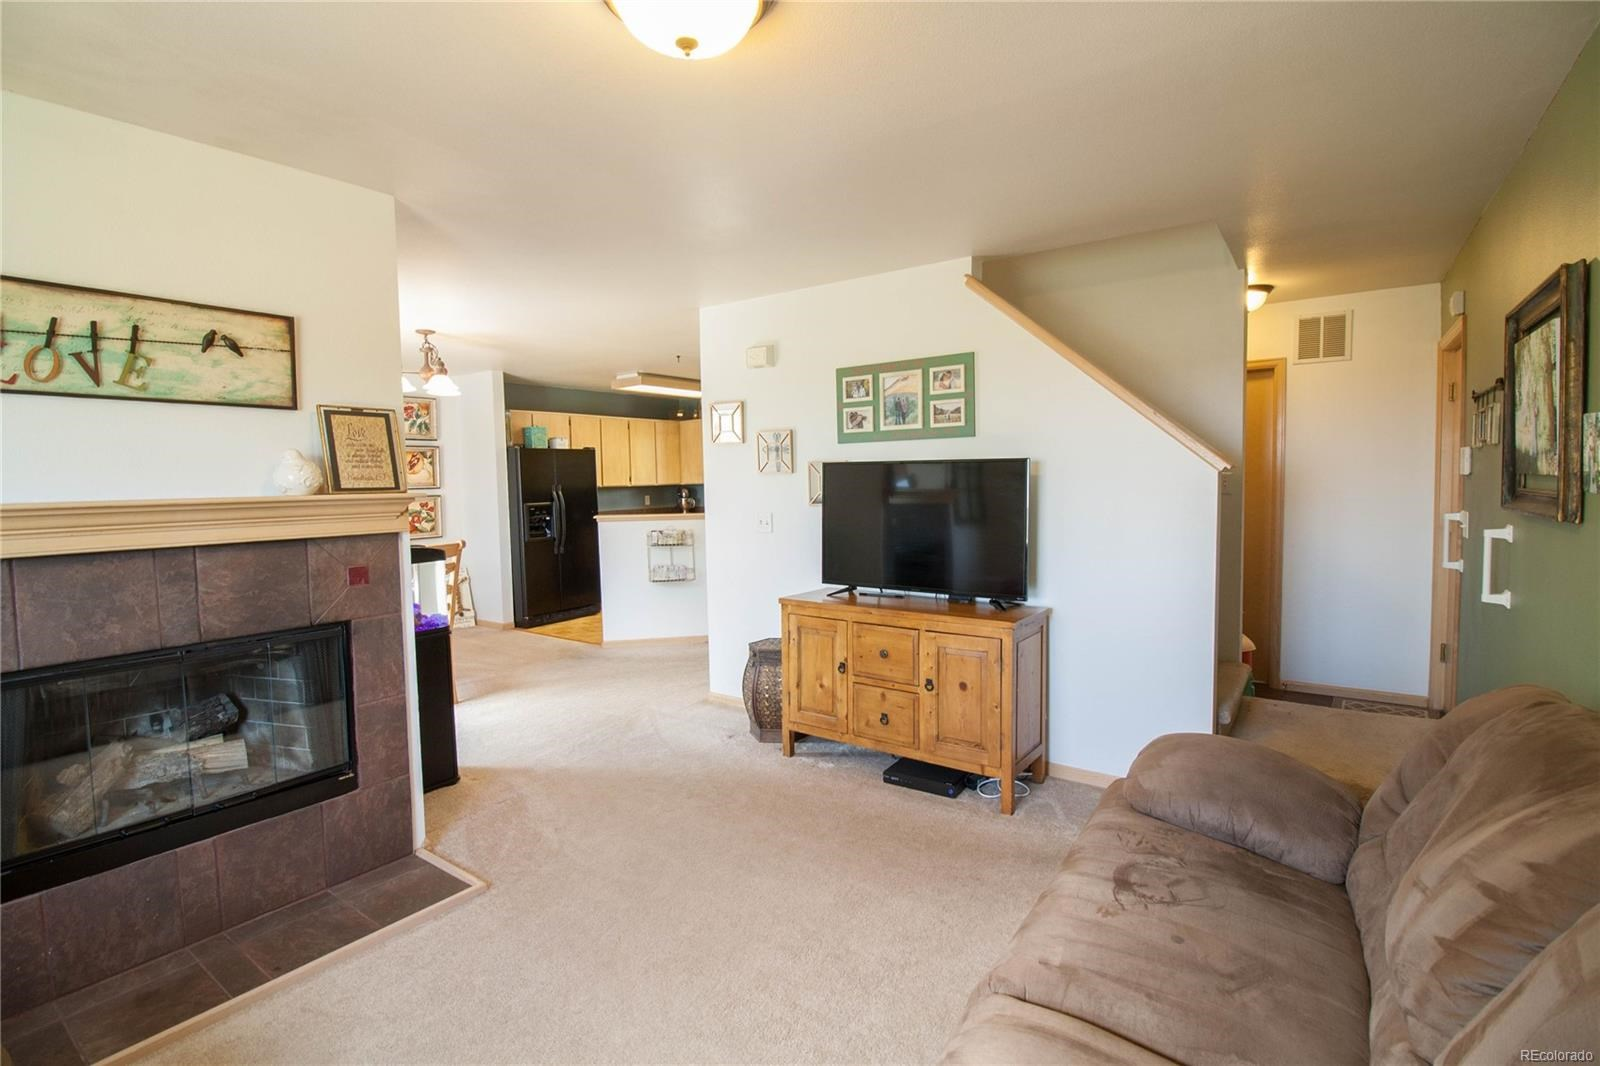 MLS# 6583524 - 7 - 6126 Polaris Drive, Fort Collins, CO 80525